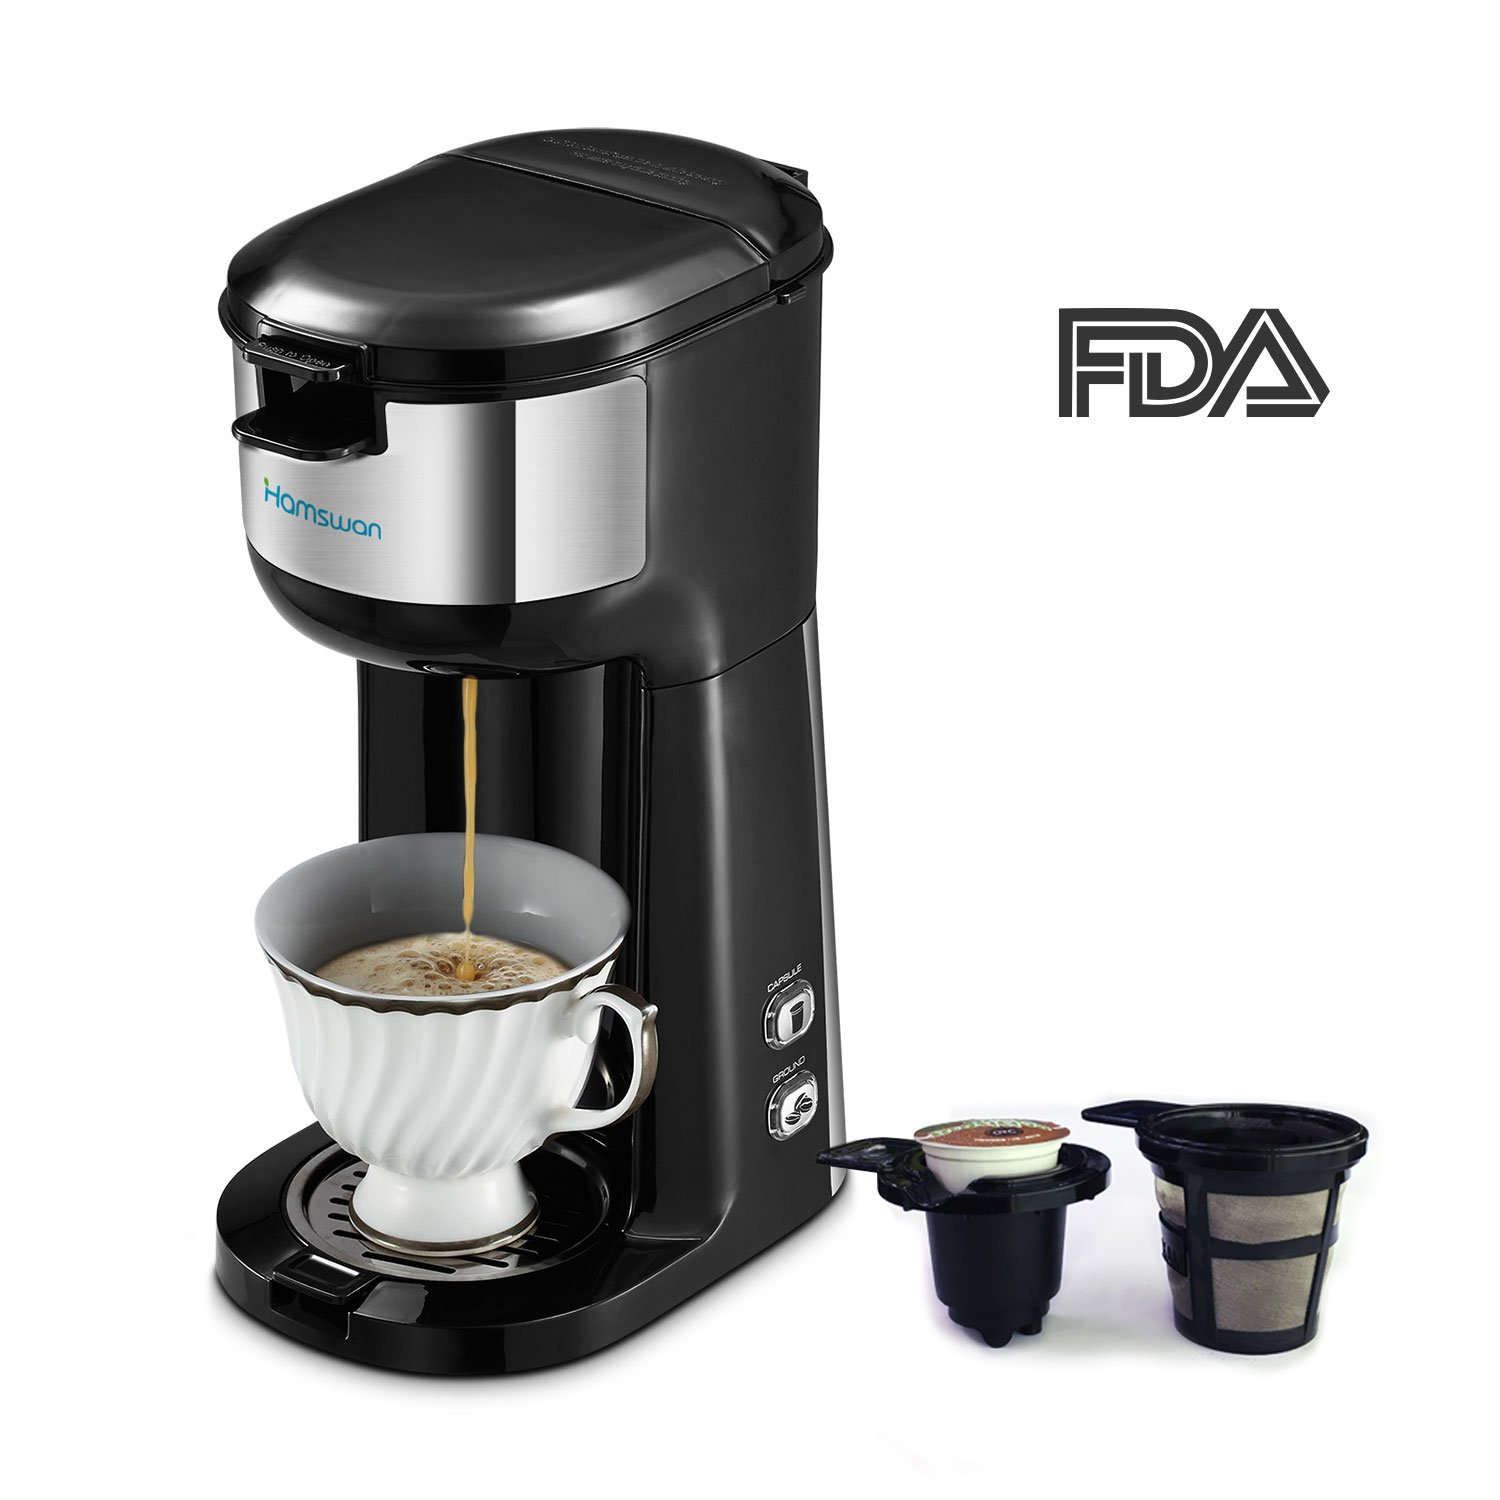 HAMSWAN Single Serve Coffee Maker Brewer, K Cup Coffee Maker Coffee Machine for K Cup Pods & Ground Coffee, Thermal Drip Small Coffee Pot